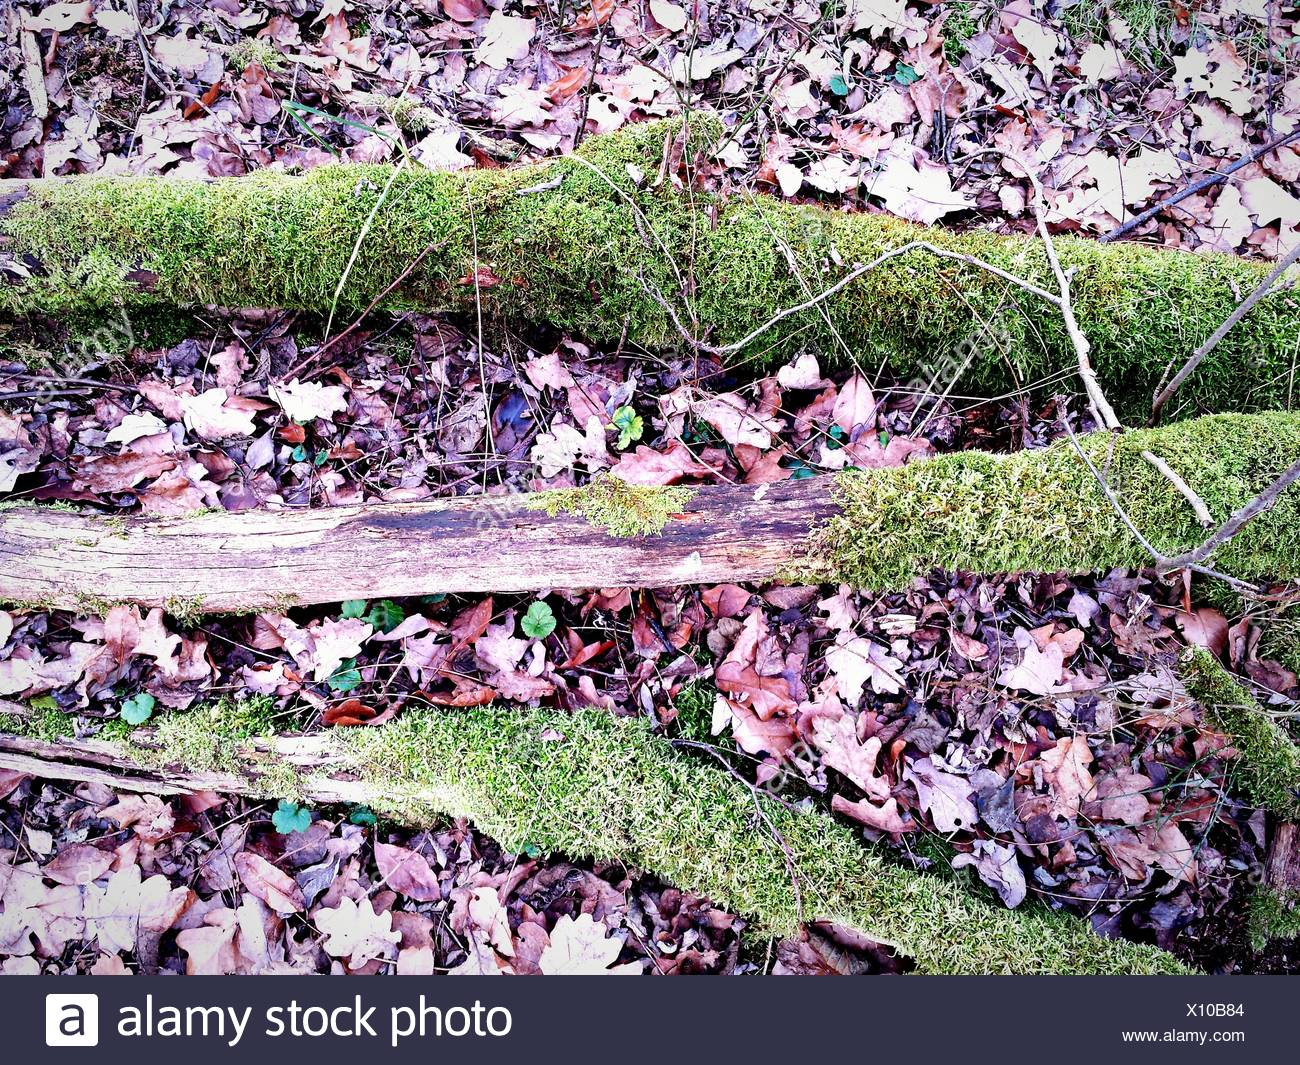 High Angle View Of Moss Covered Tree Roots In Forest Stock Photo